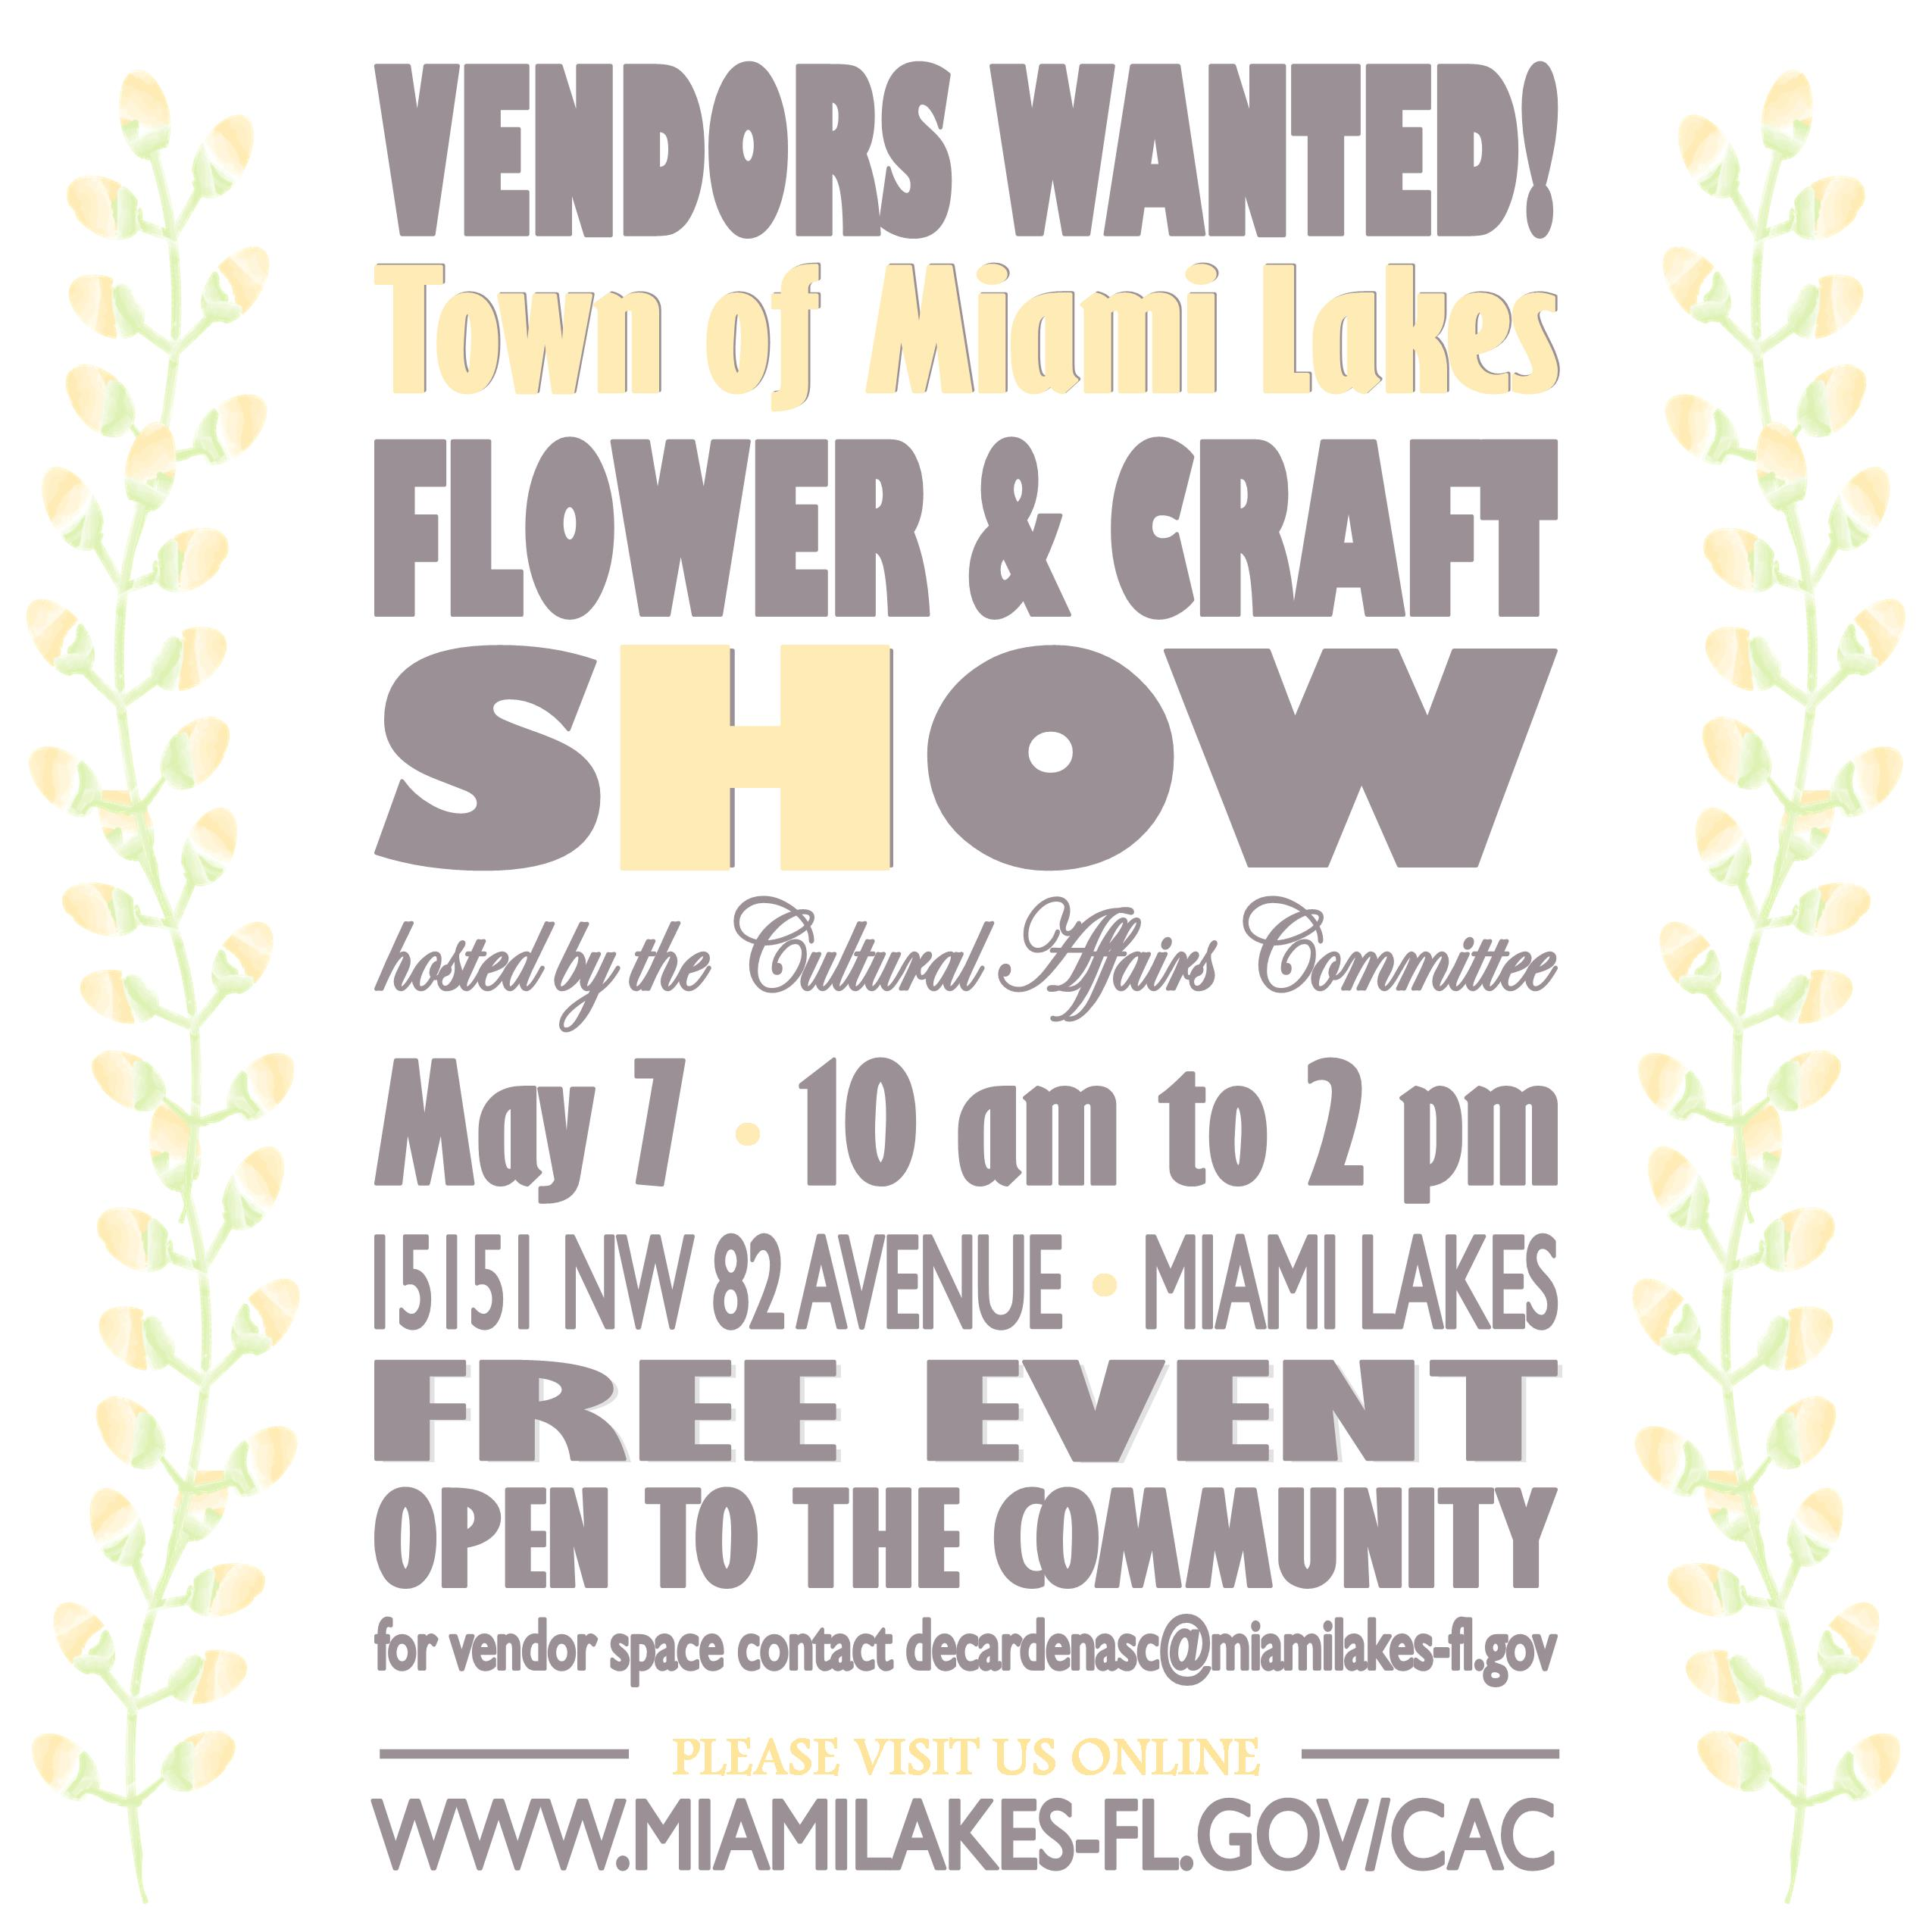 Vendors Wanted 2016 social media only